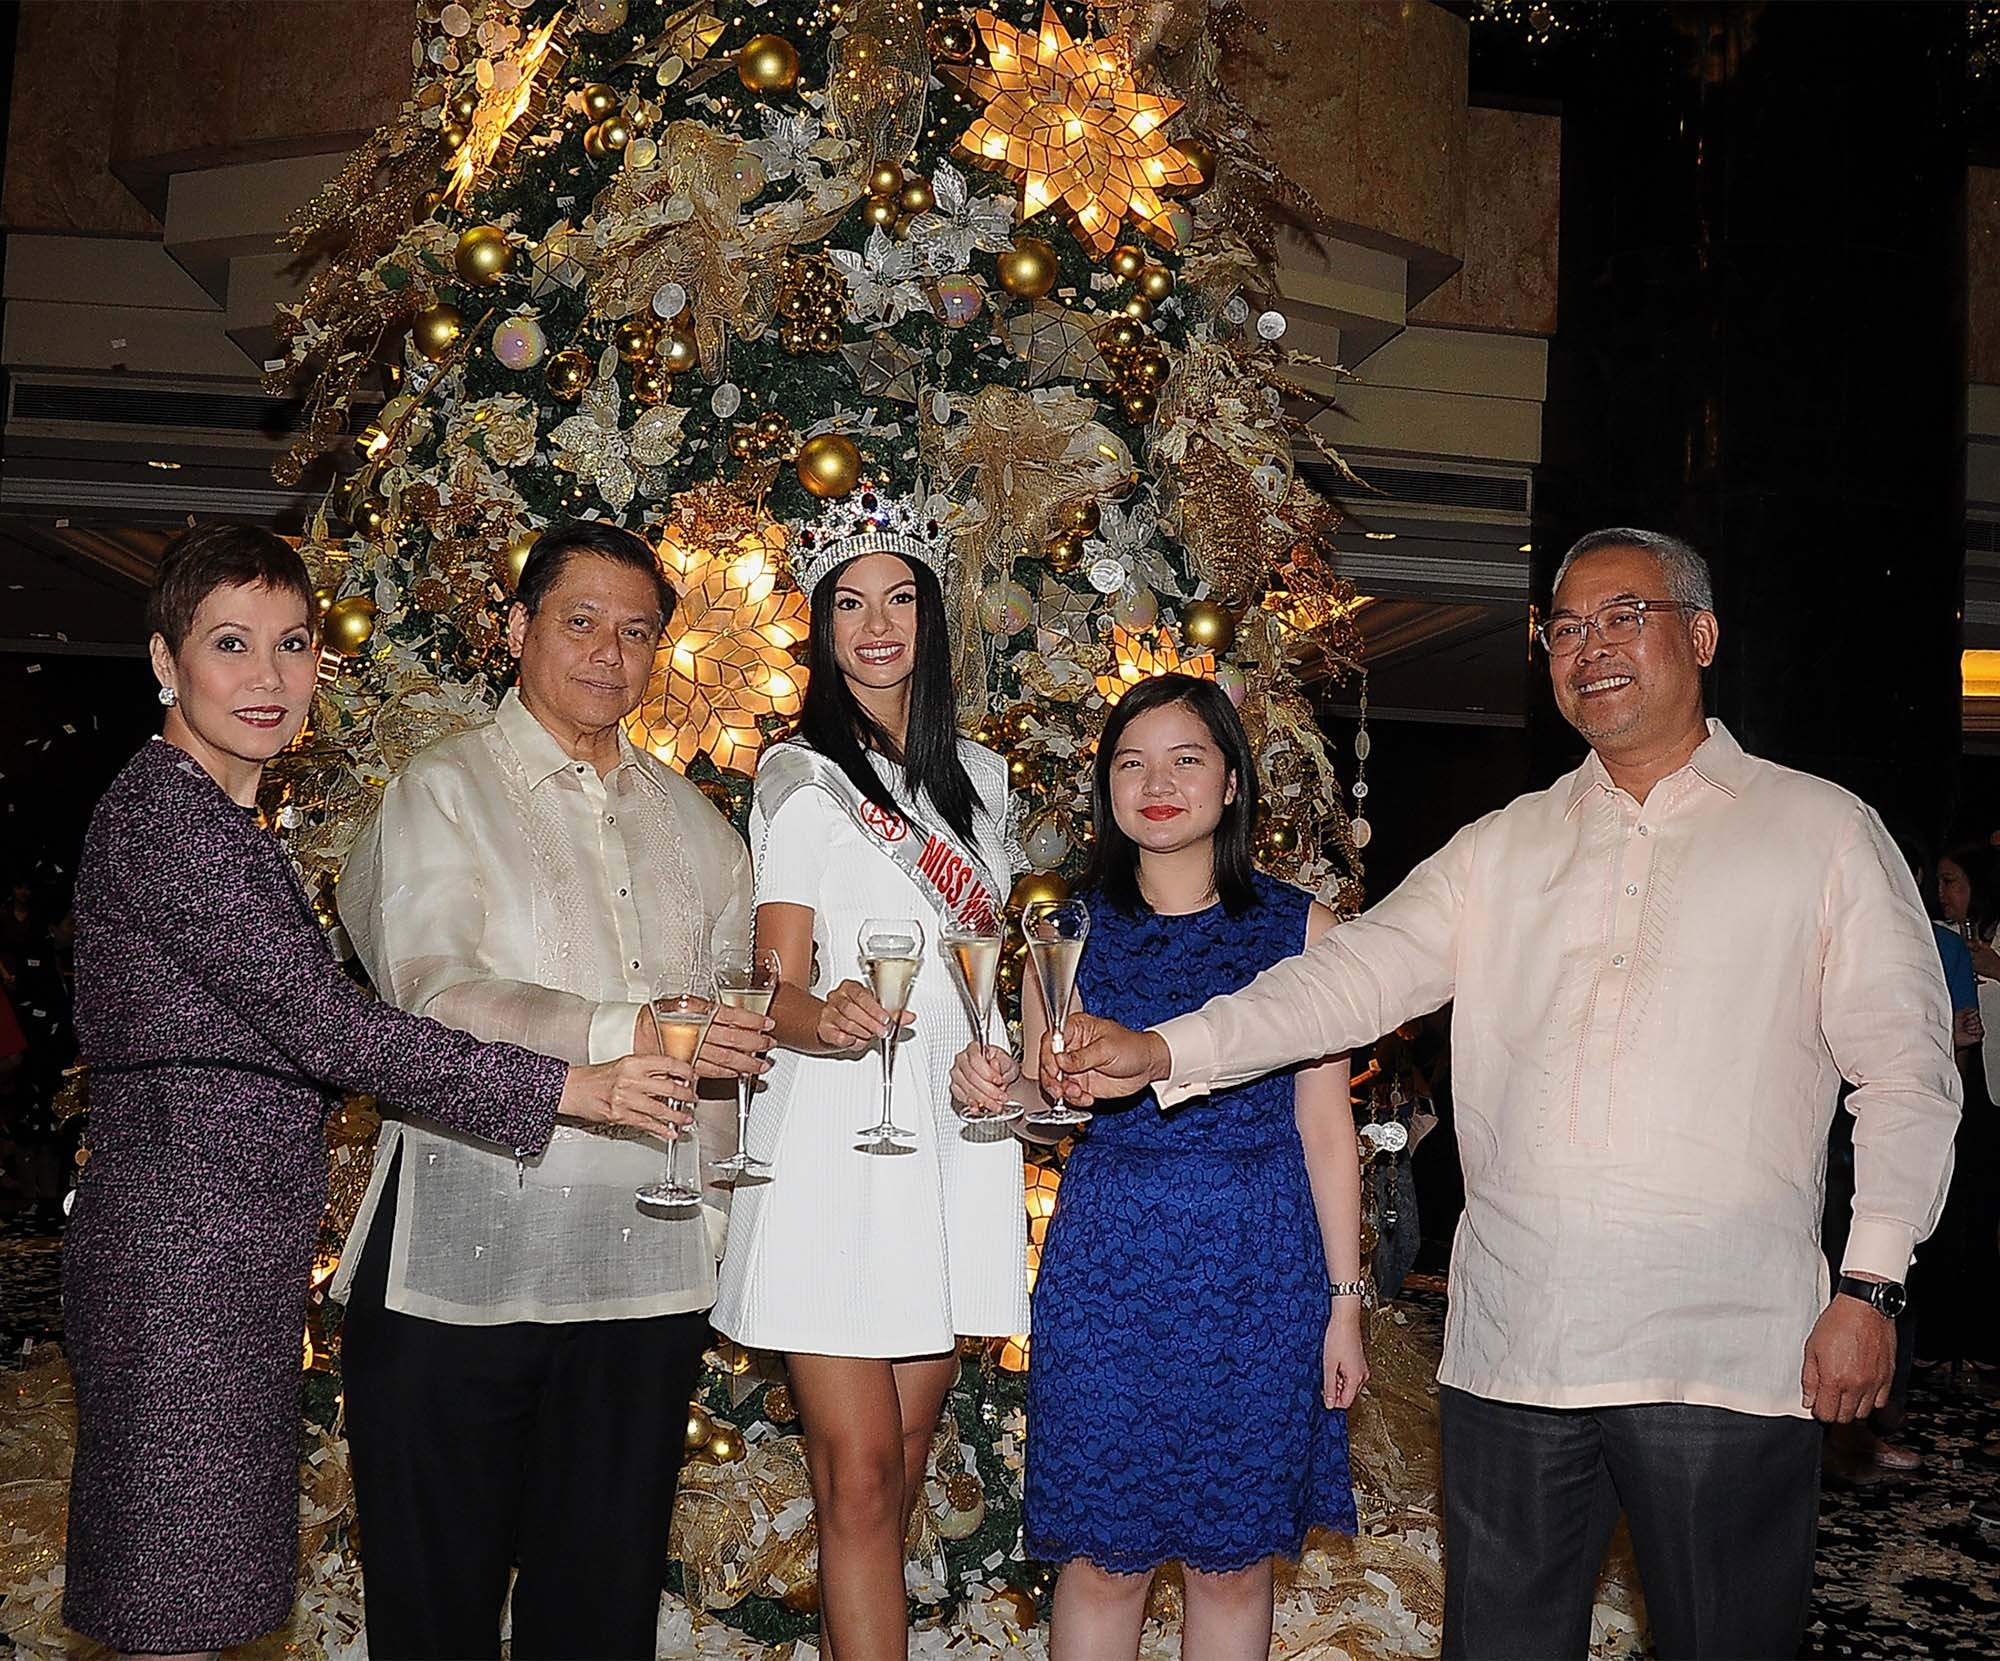 Simple Christmas Tree Decorations Philippines.Luxury Hotels Light Up Their Christmas Decors Hospitality